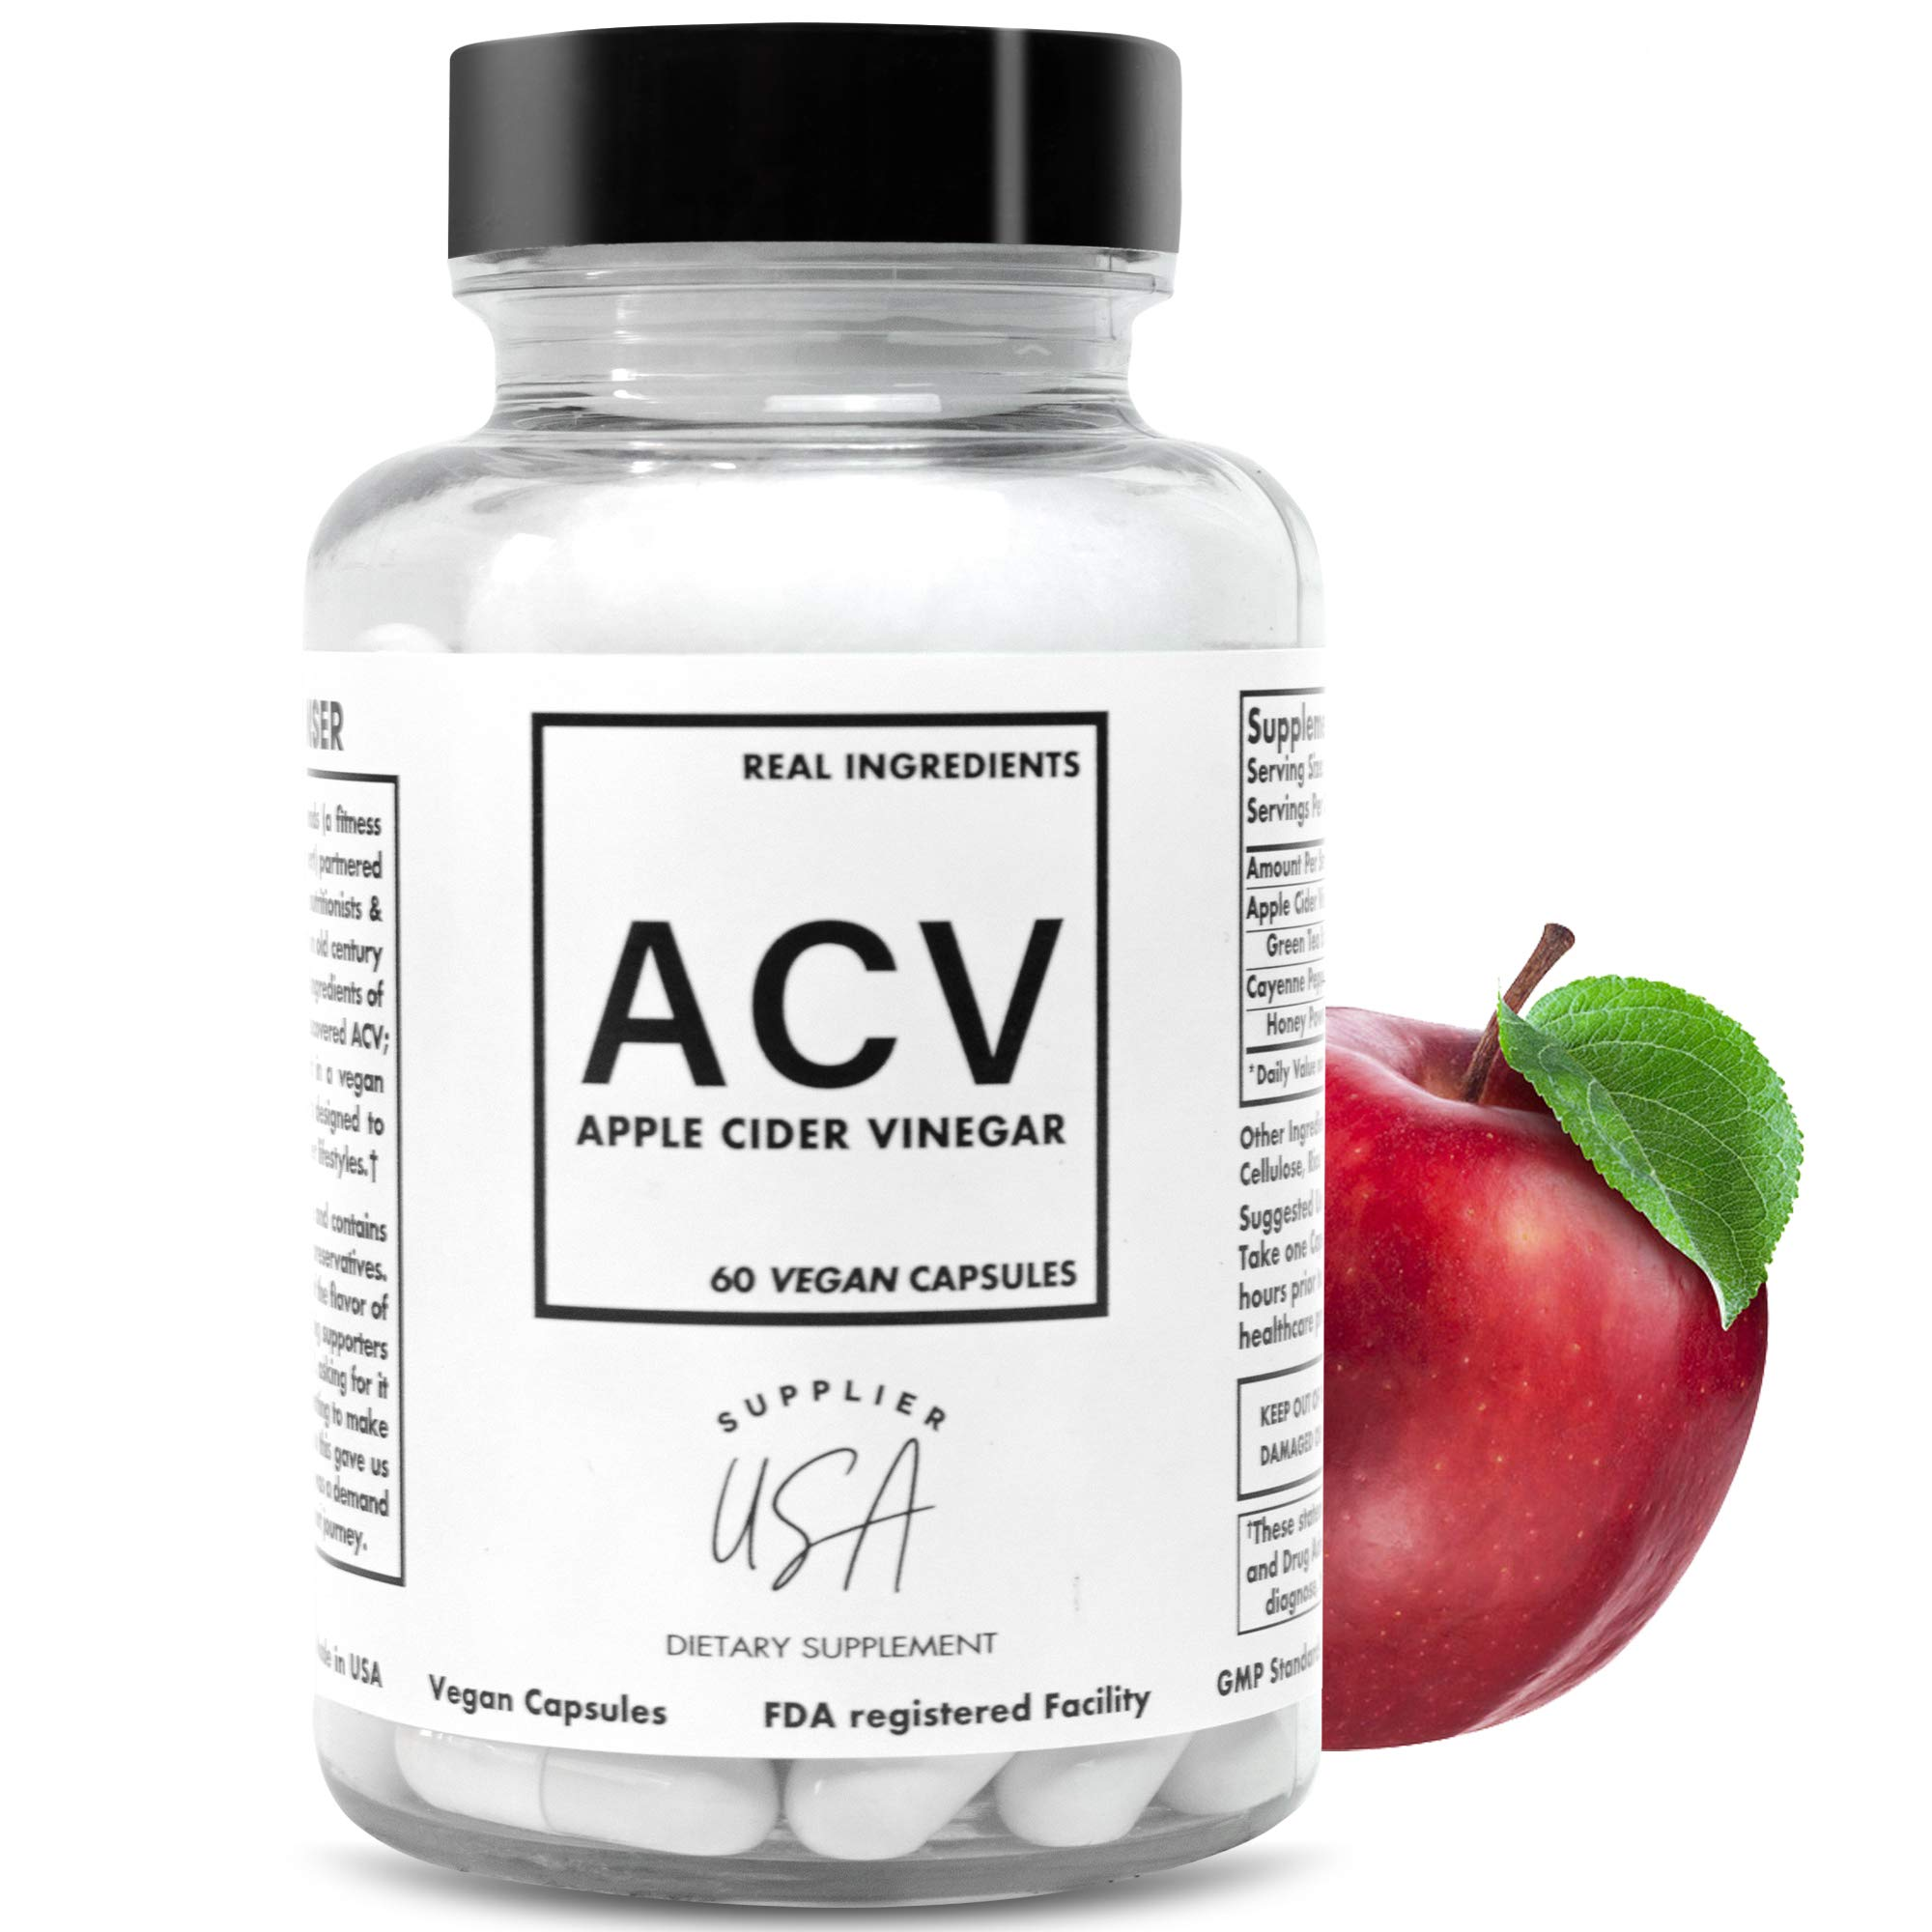 Supplier USA ACV Apple Cider Vinegar Capsules Vegetarian - Natural Weight Support, Detox, Digestion - Powerful 500mg Cleanser, Premium-Non-GMO Cider Capsules, FDA Registered Facility, USA Made